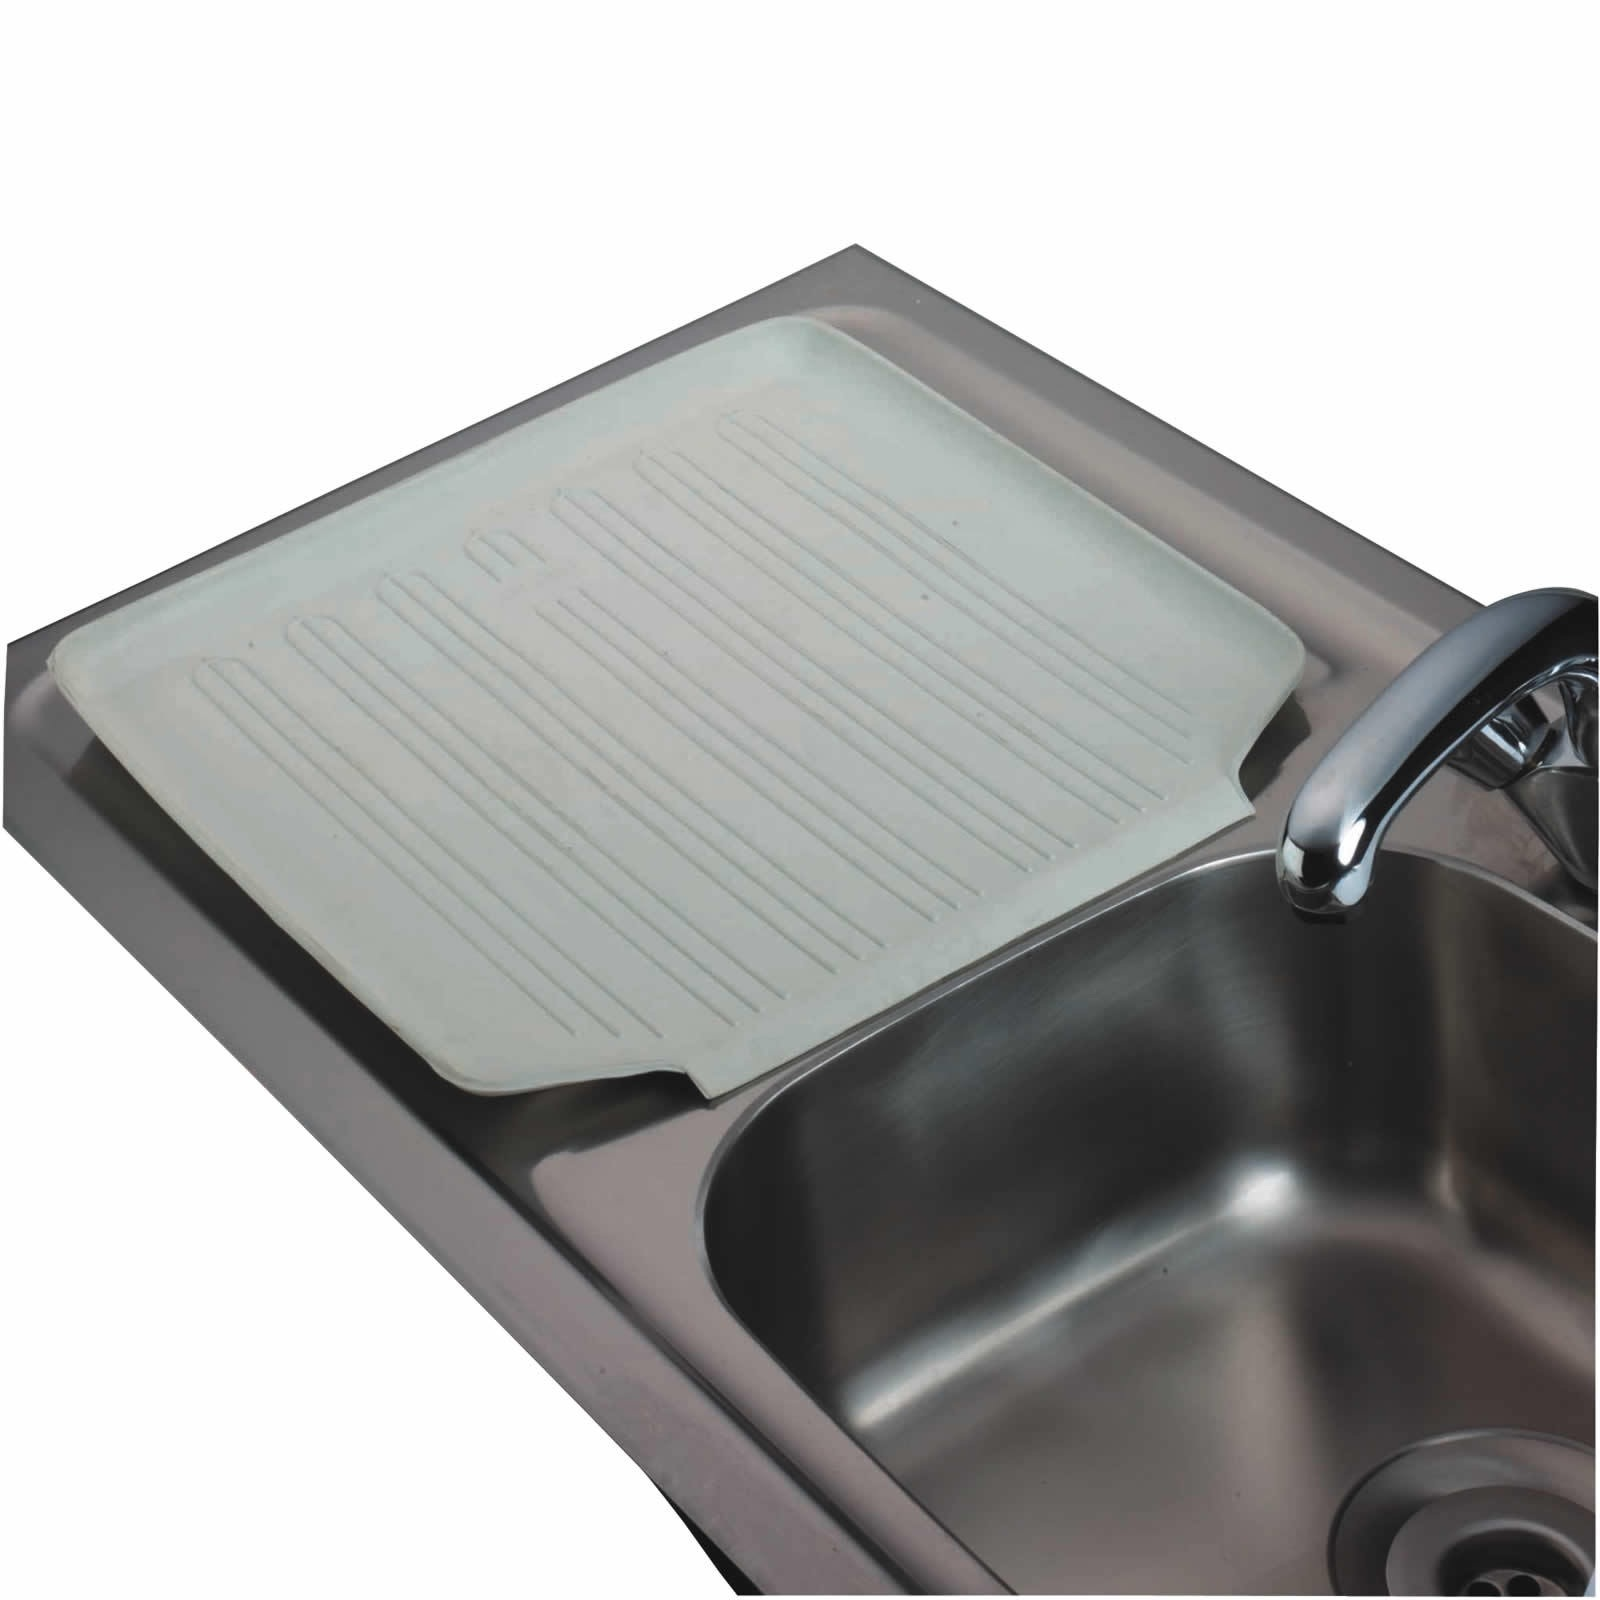 Kitchencraft Rubber Draining Board Mat Cleaning